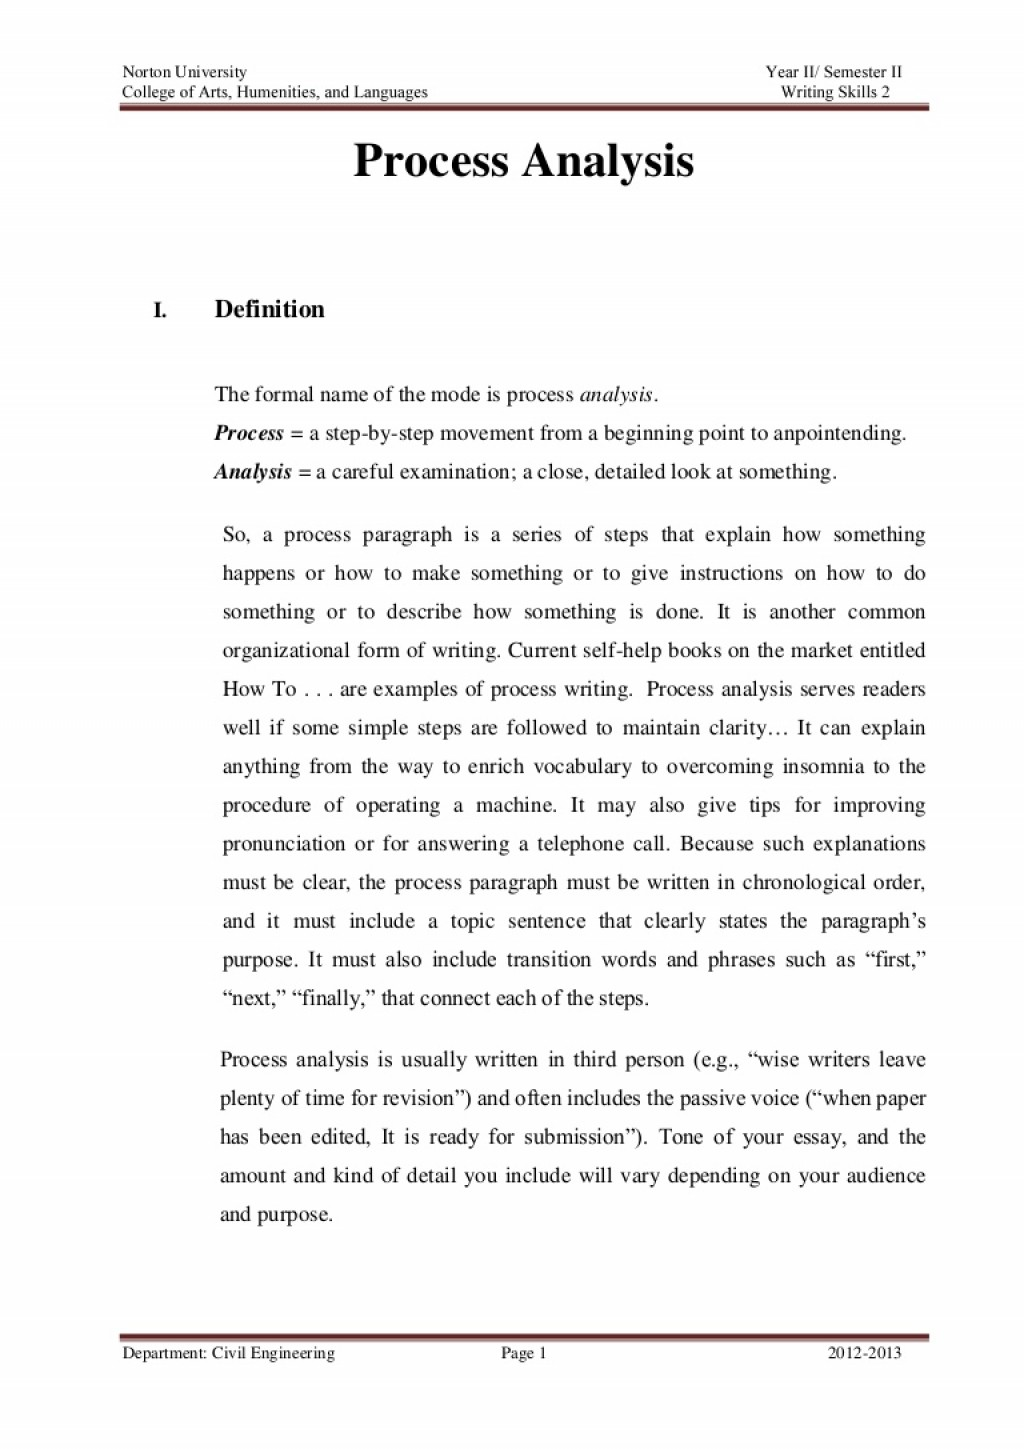 002 Essay Exampleanalysisparagraph Phpapp01 Thumbnail How To Write Top A Process Ielts Thesis Statement For Analysis Large